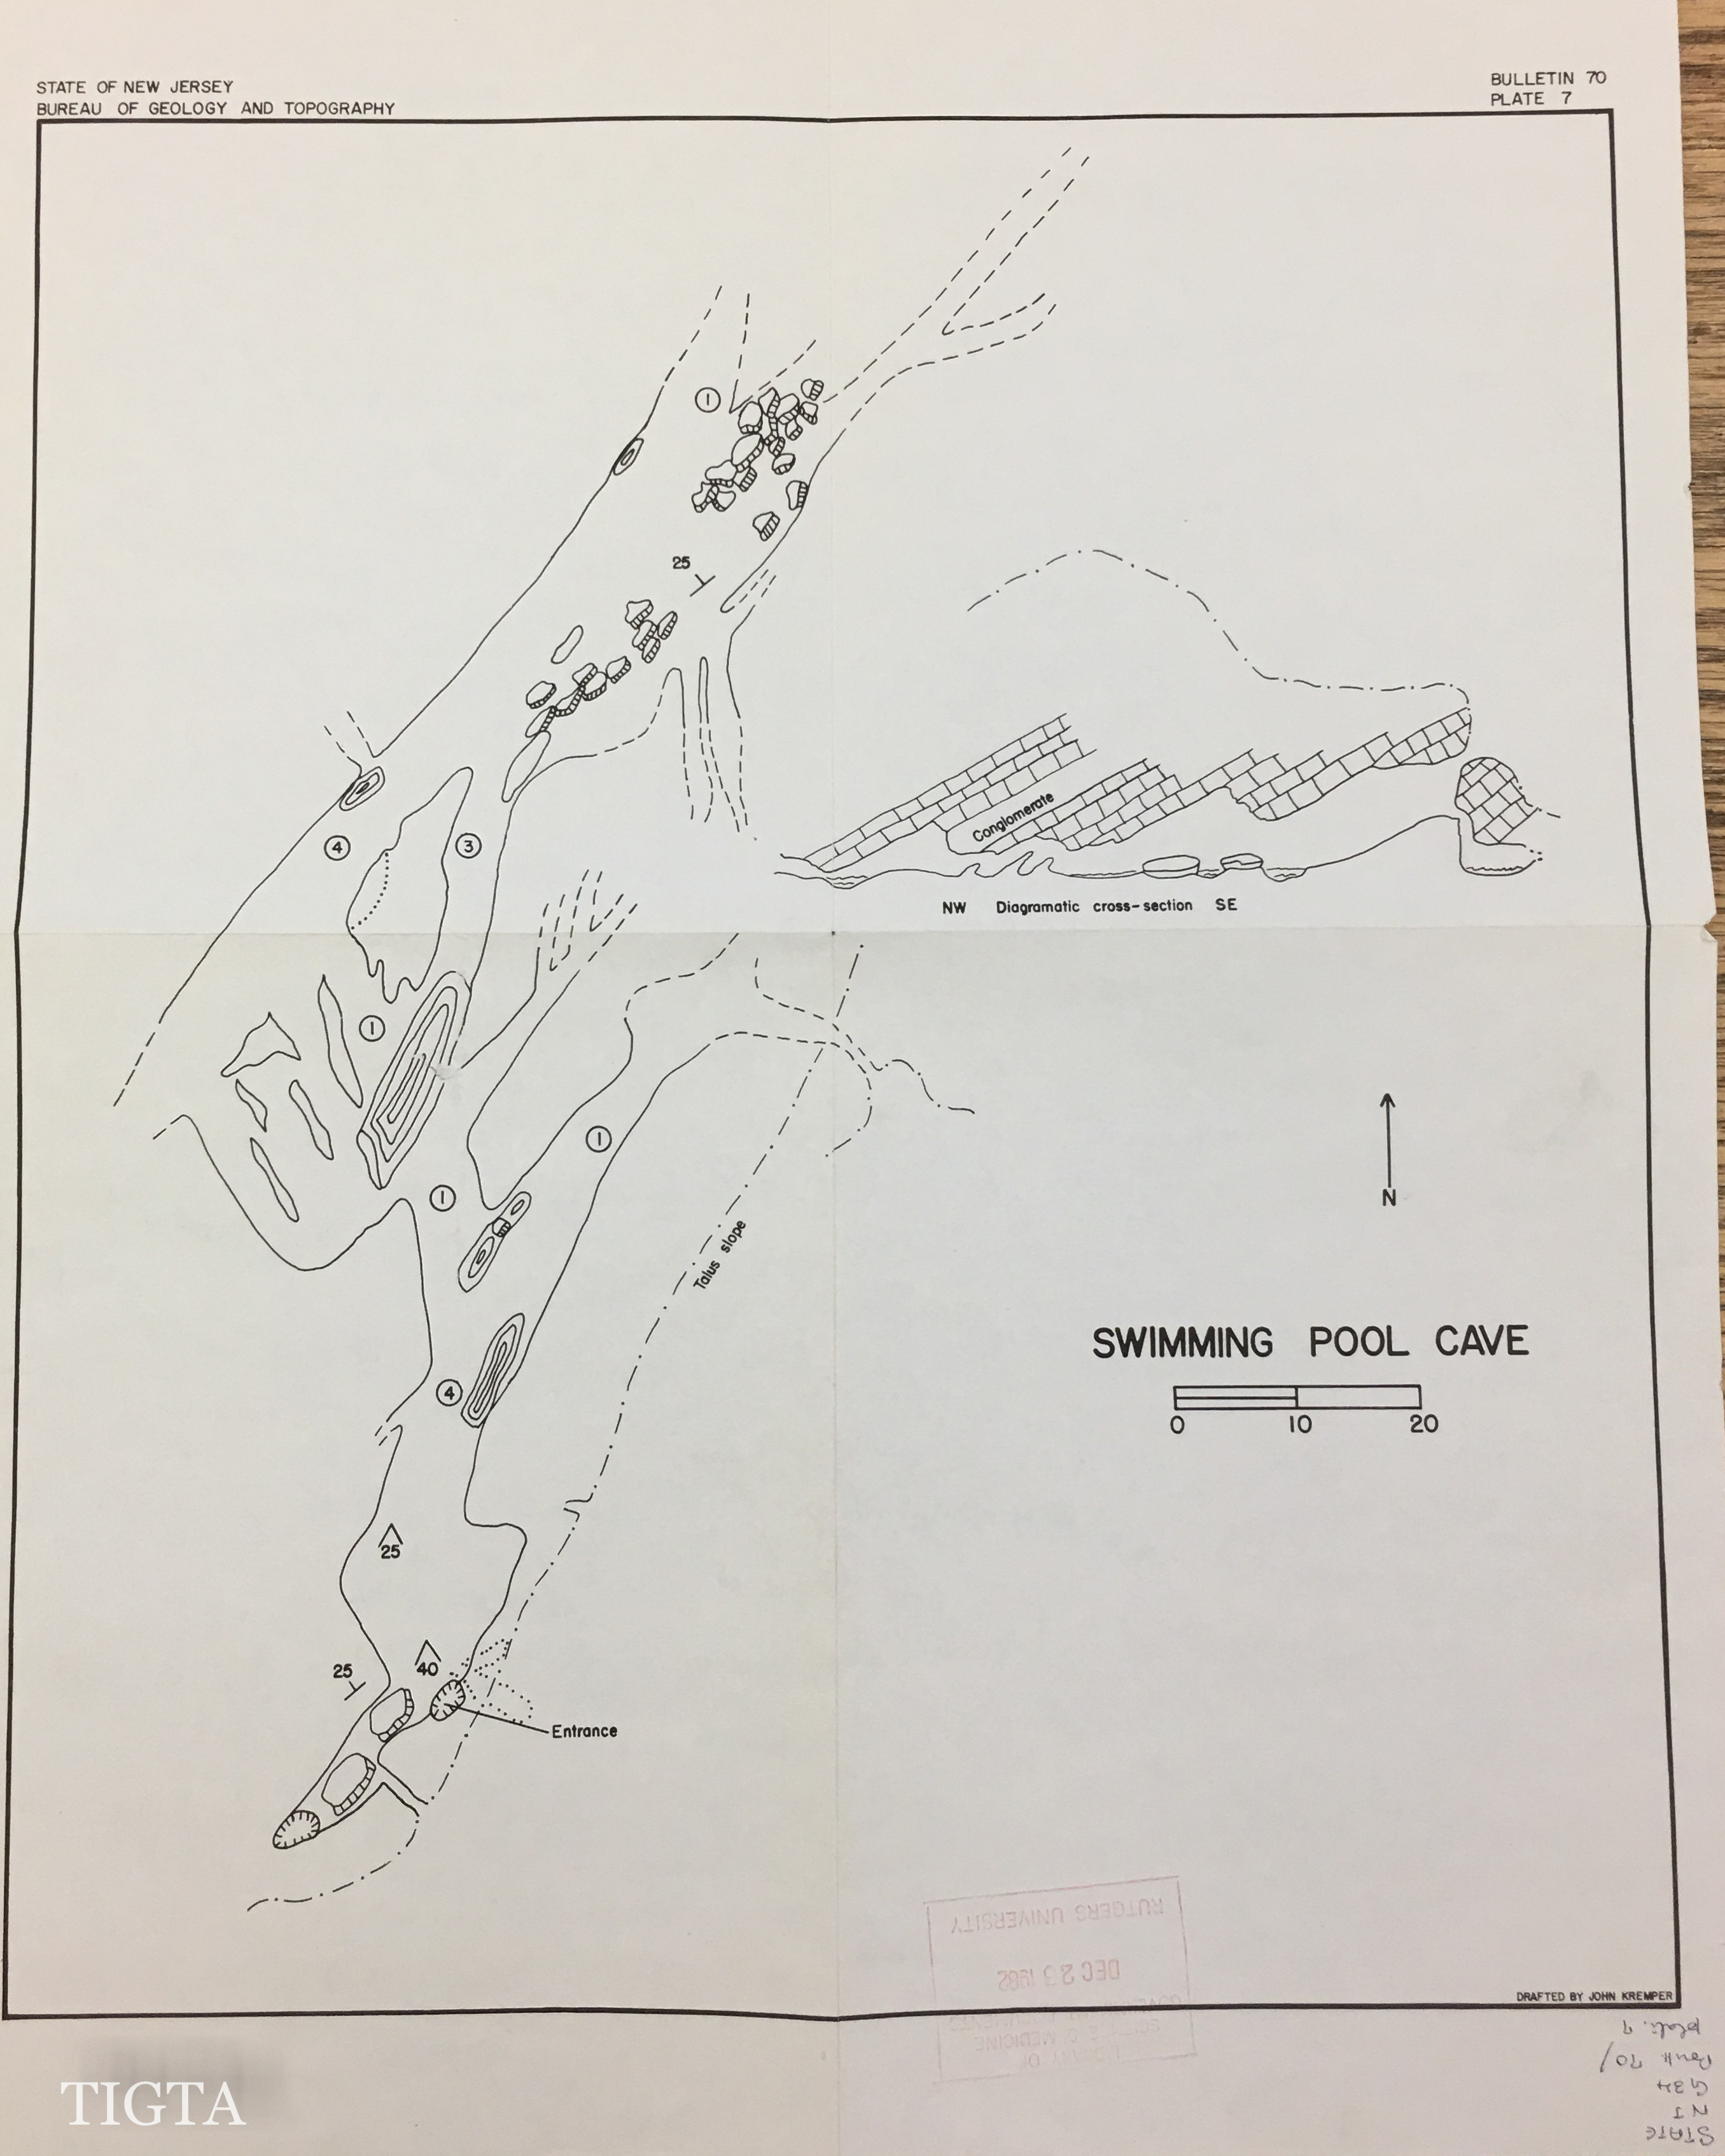 SWIMMING POOL CAVE MAP